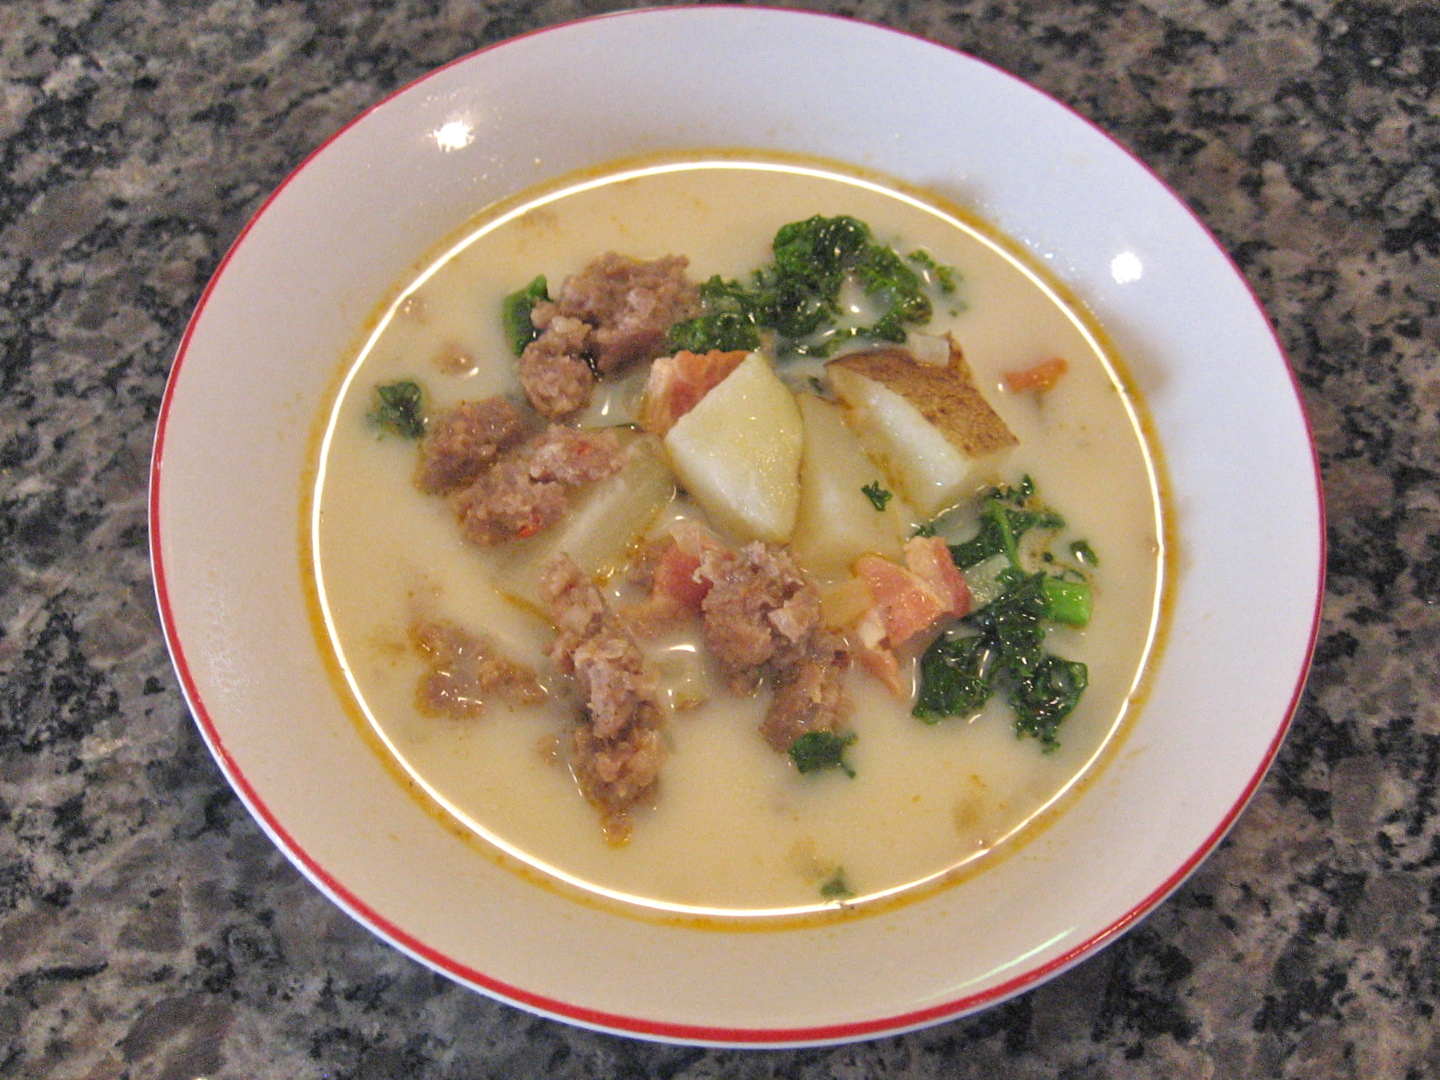 Cooking with Mandy: Zuppa Toscana Soup